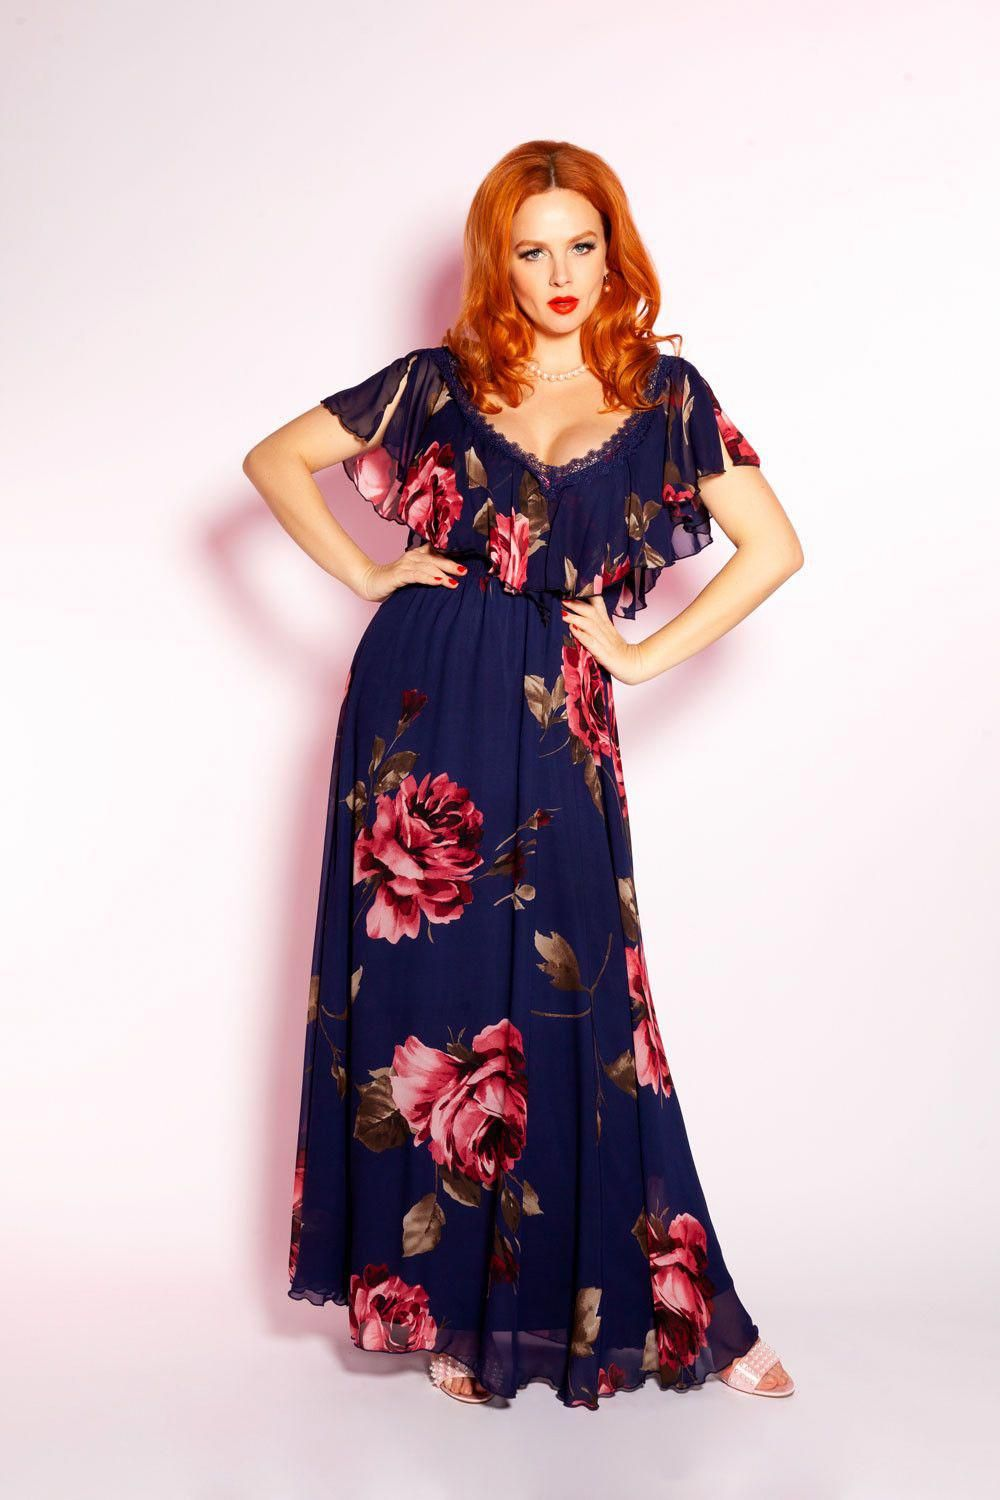 Floral Maxi Dress In Navy Dresses Clothing Xs 4x Pinup Girl Clothing Maxidressessummer Floral Maxi Dress Pinup Girl Clothing Maxi Dress [ 1500 x 1000 Pixel ]